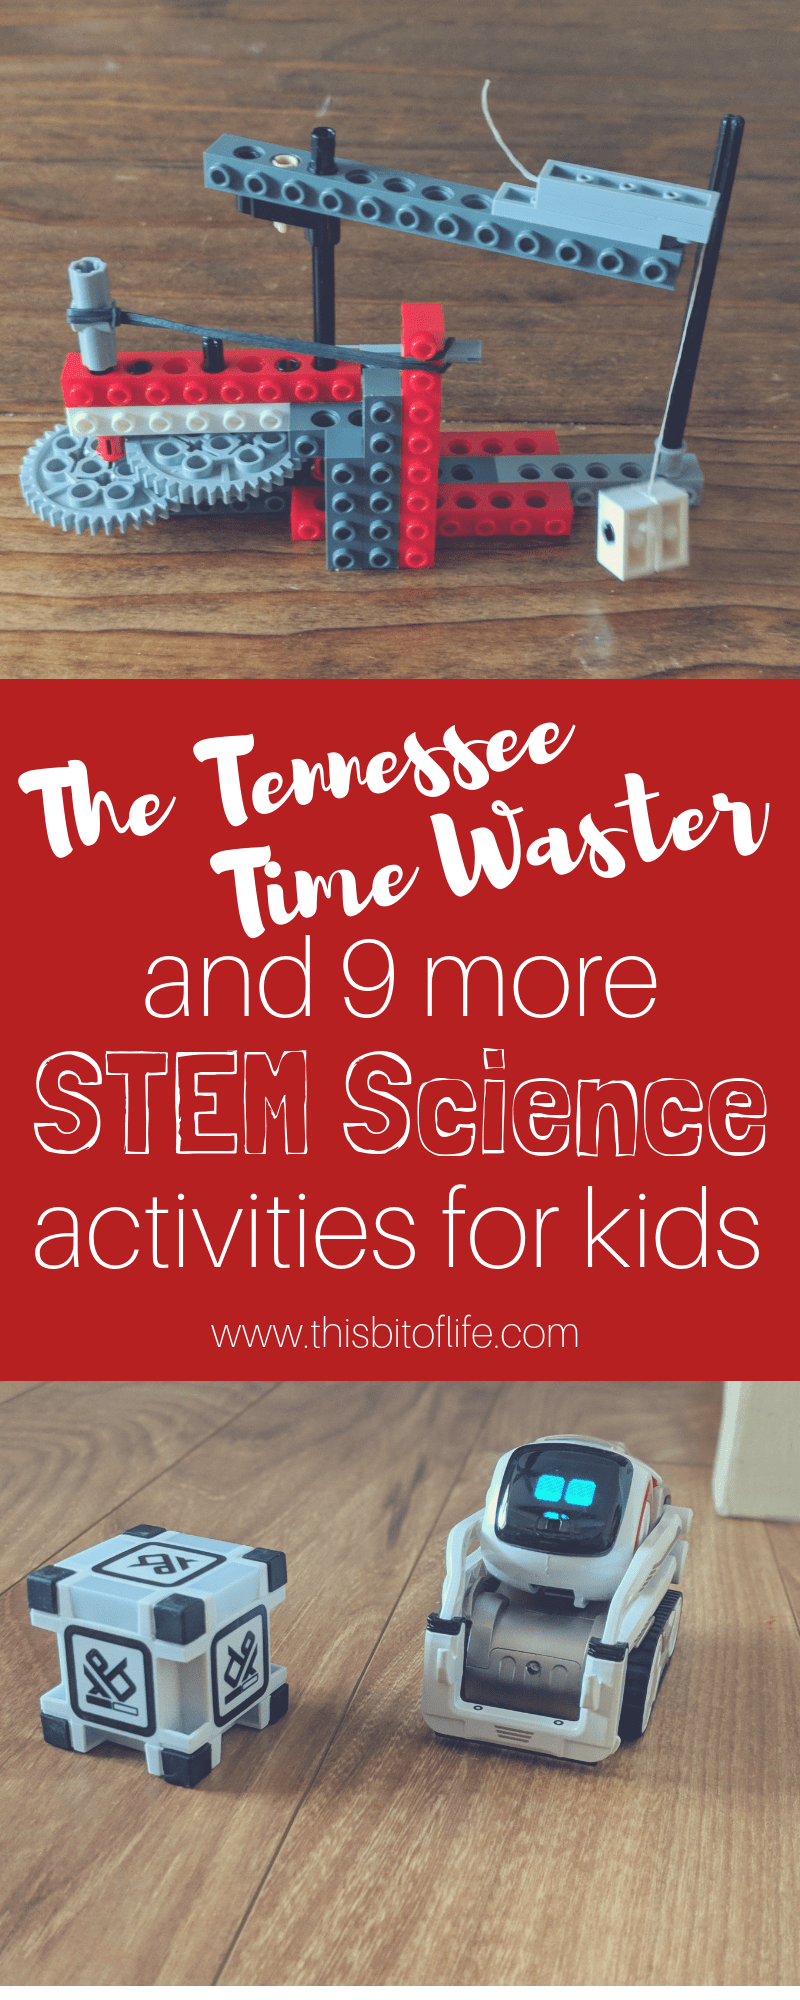 STEM Science projects for kids. STEM Science is proven to have many benefits for kids! Here are some STEM projects, toys, and activities for kids to get their hands on and to keep learning fun. #STEM #scienceforkids #homeschoolscience #thisbitoflife